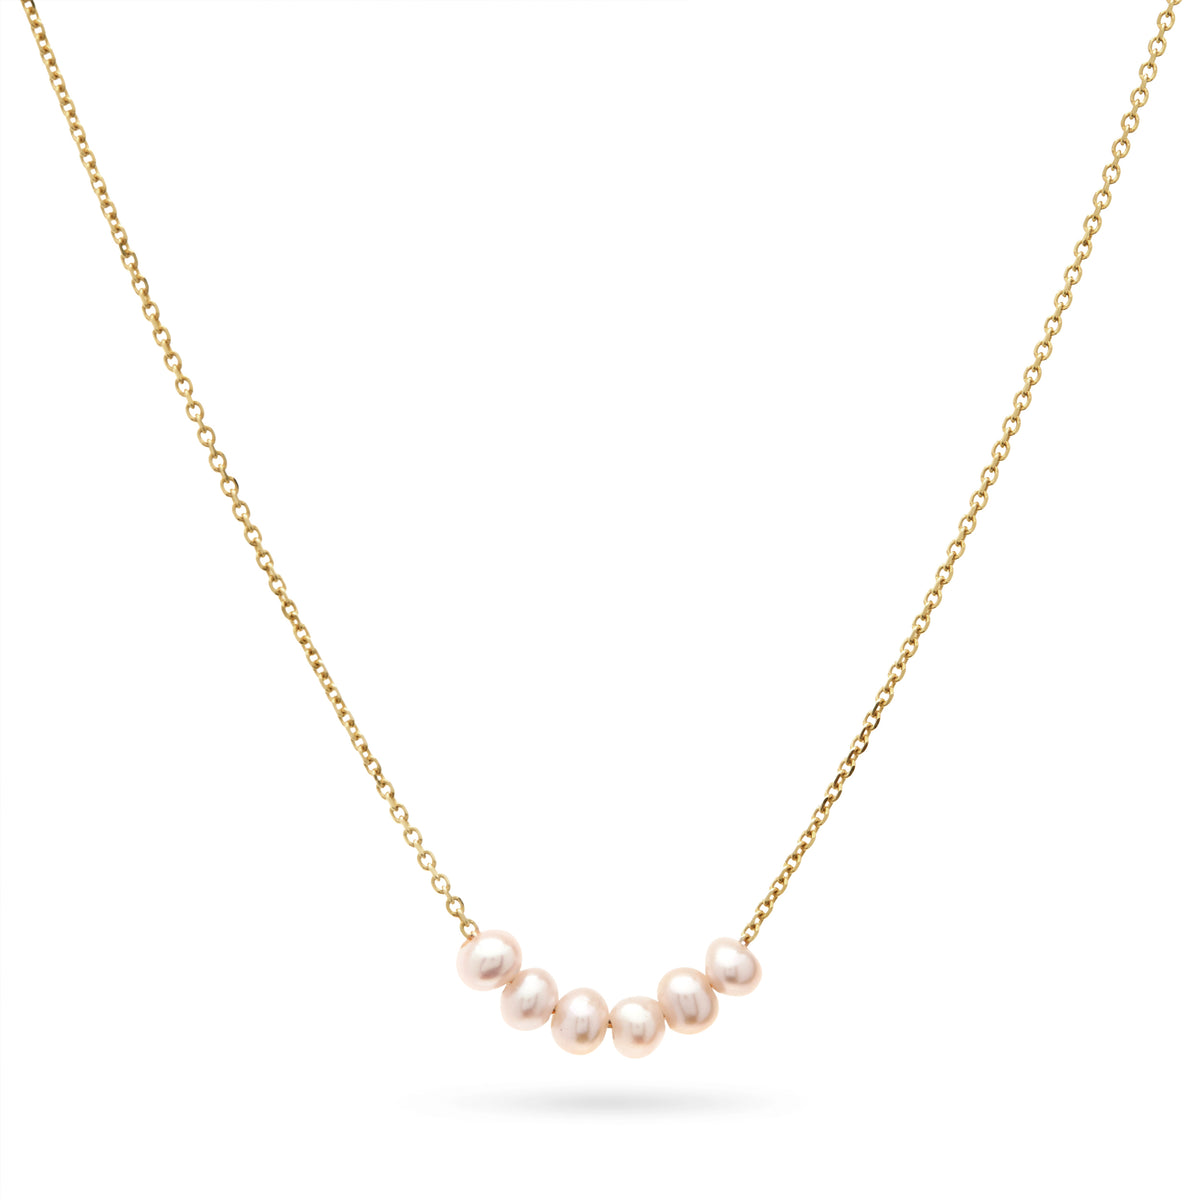 Pearl Smile Necklace in Yellow Gold